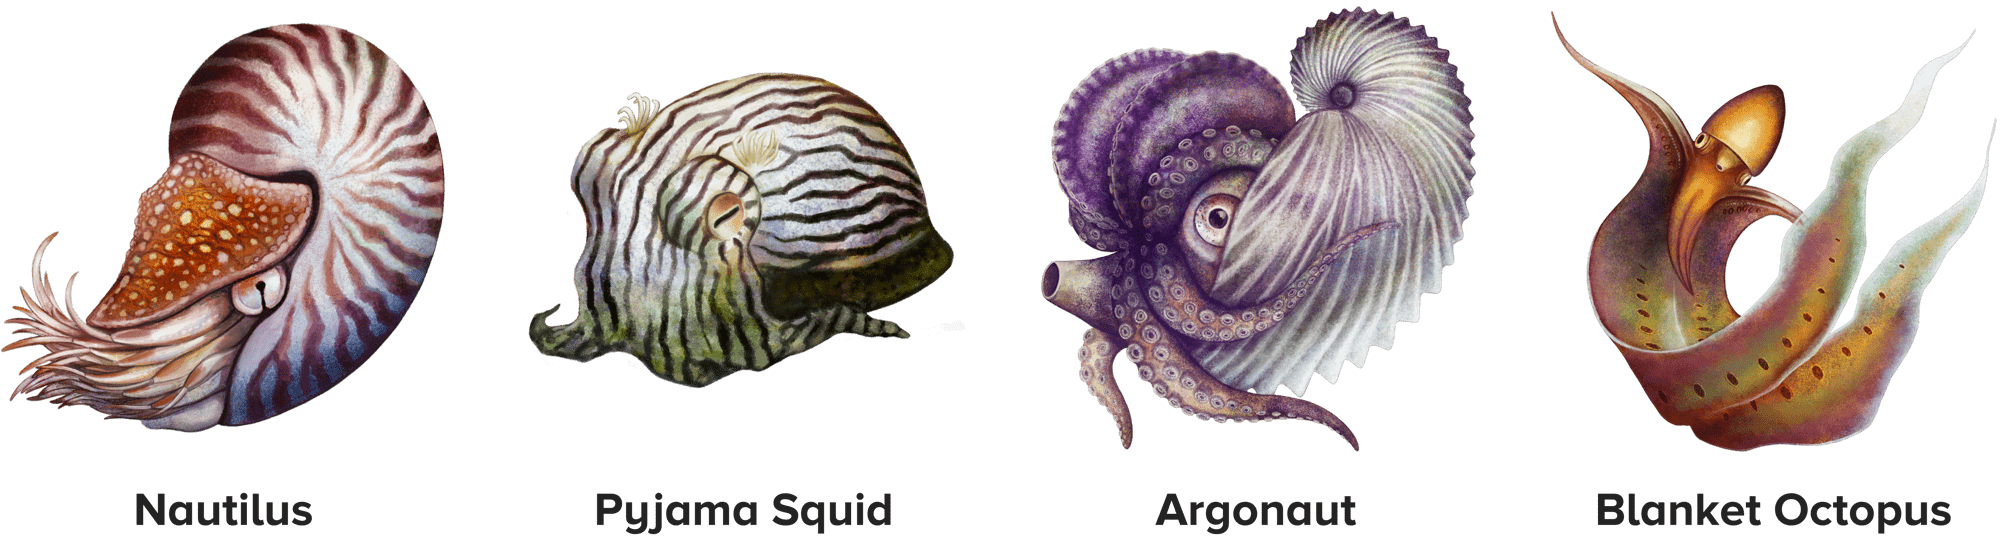 four illustrated cephalopods, including the nautilus, pyjama squid, argonaut, and the blanket octopus